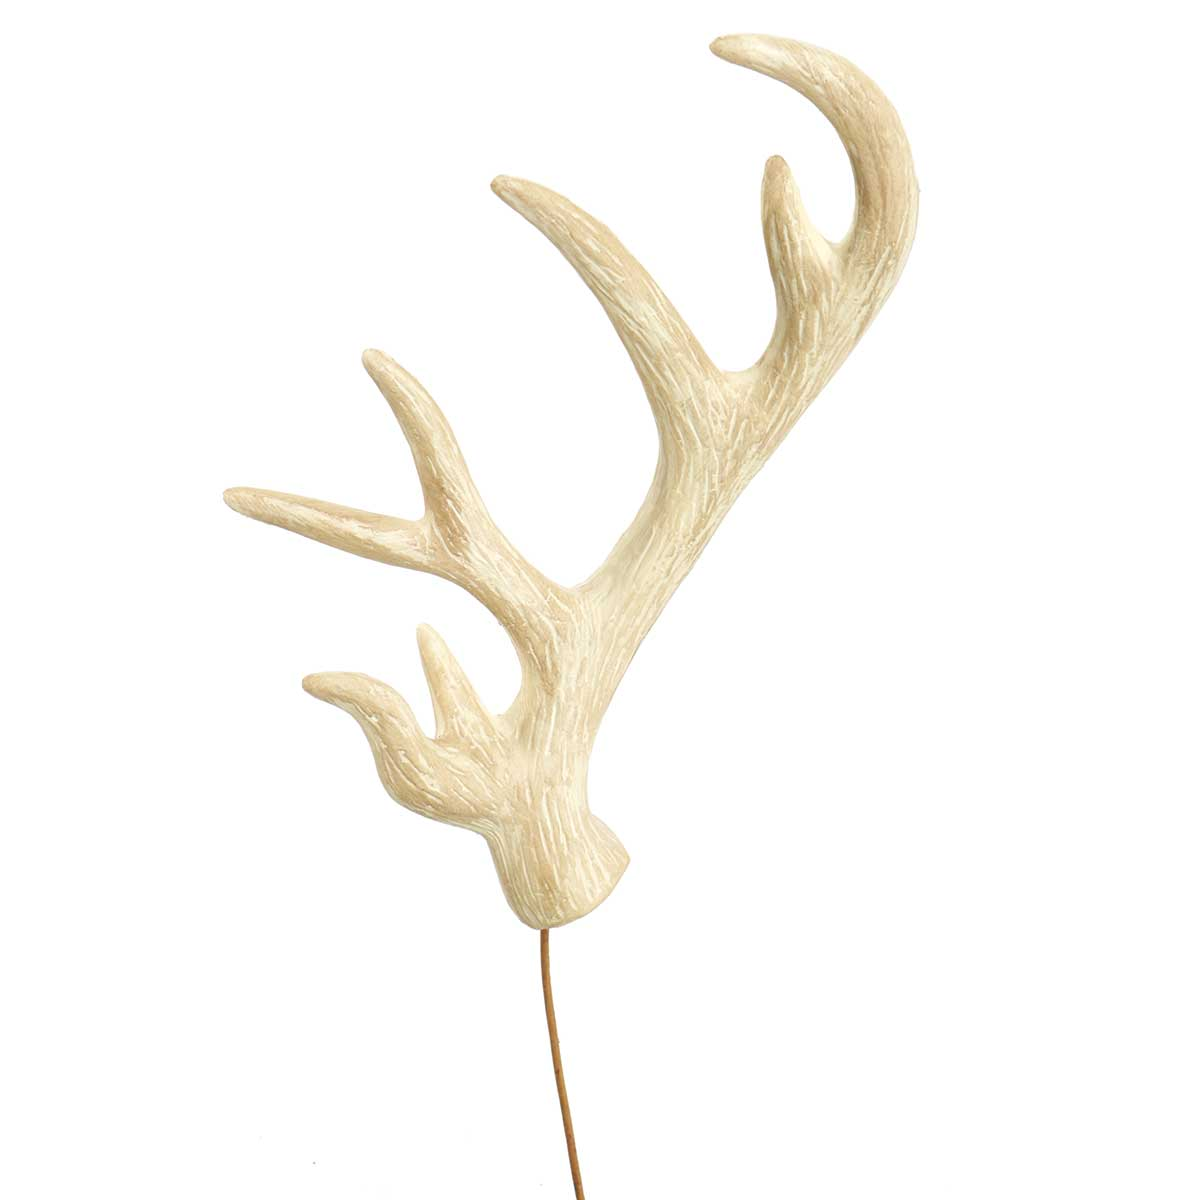 "TETON ANTLER ON PIK 4.5""X1""X16"""